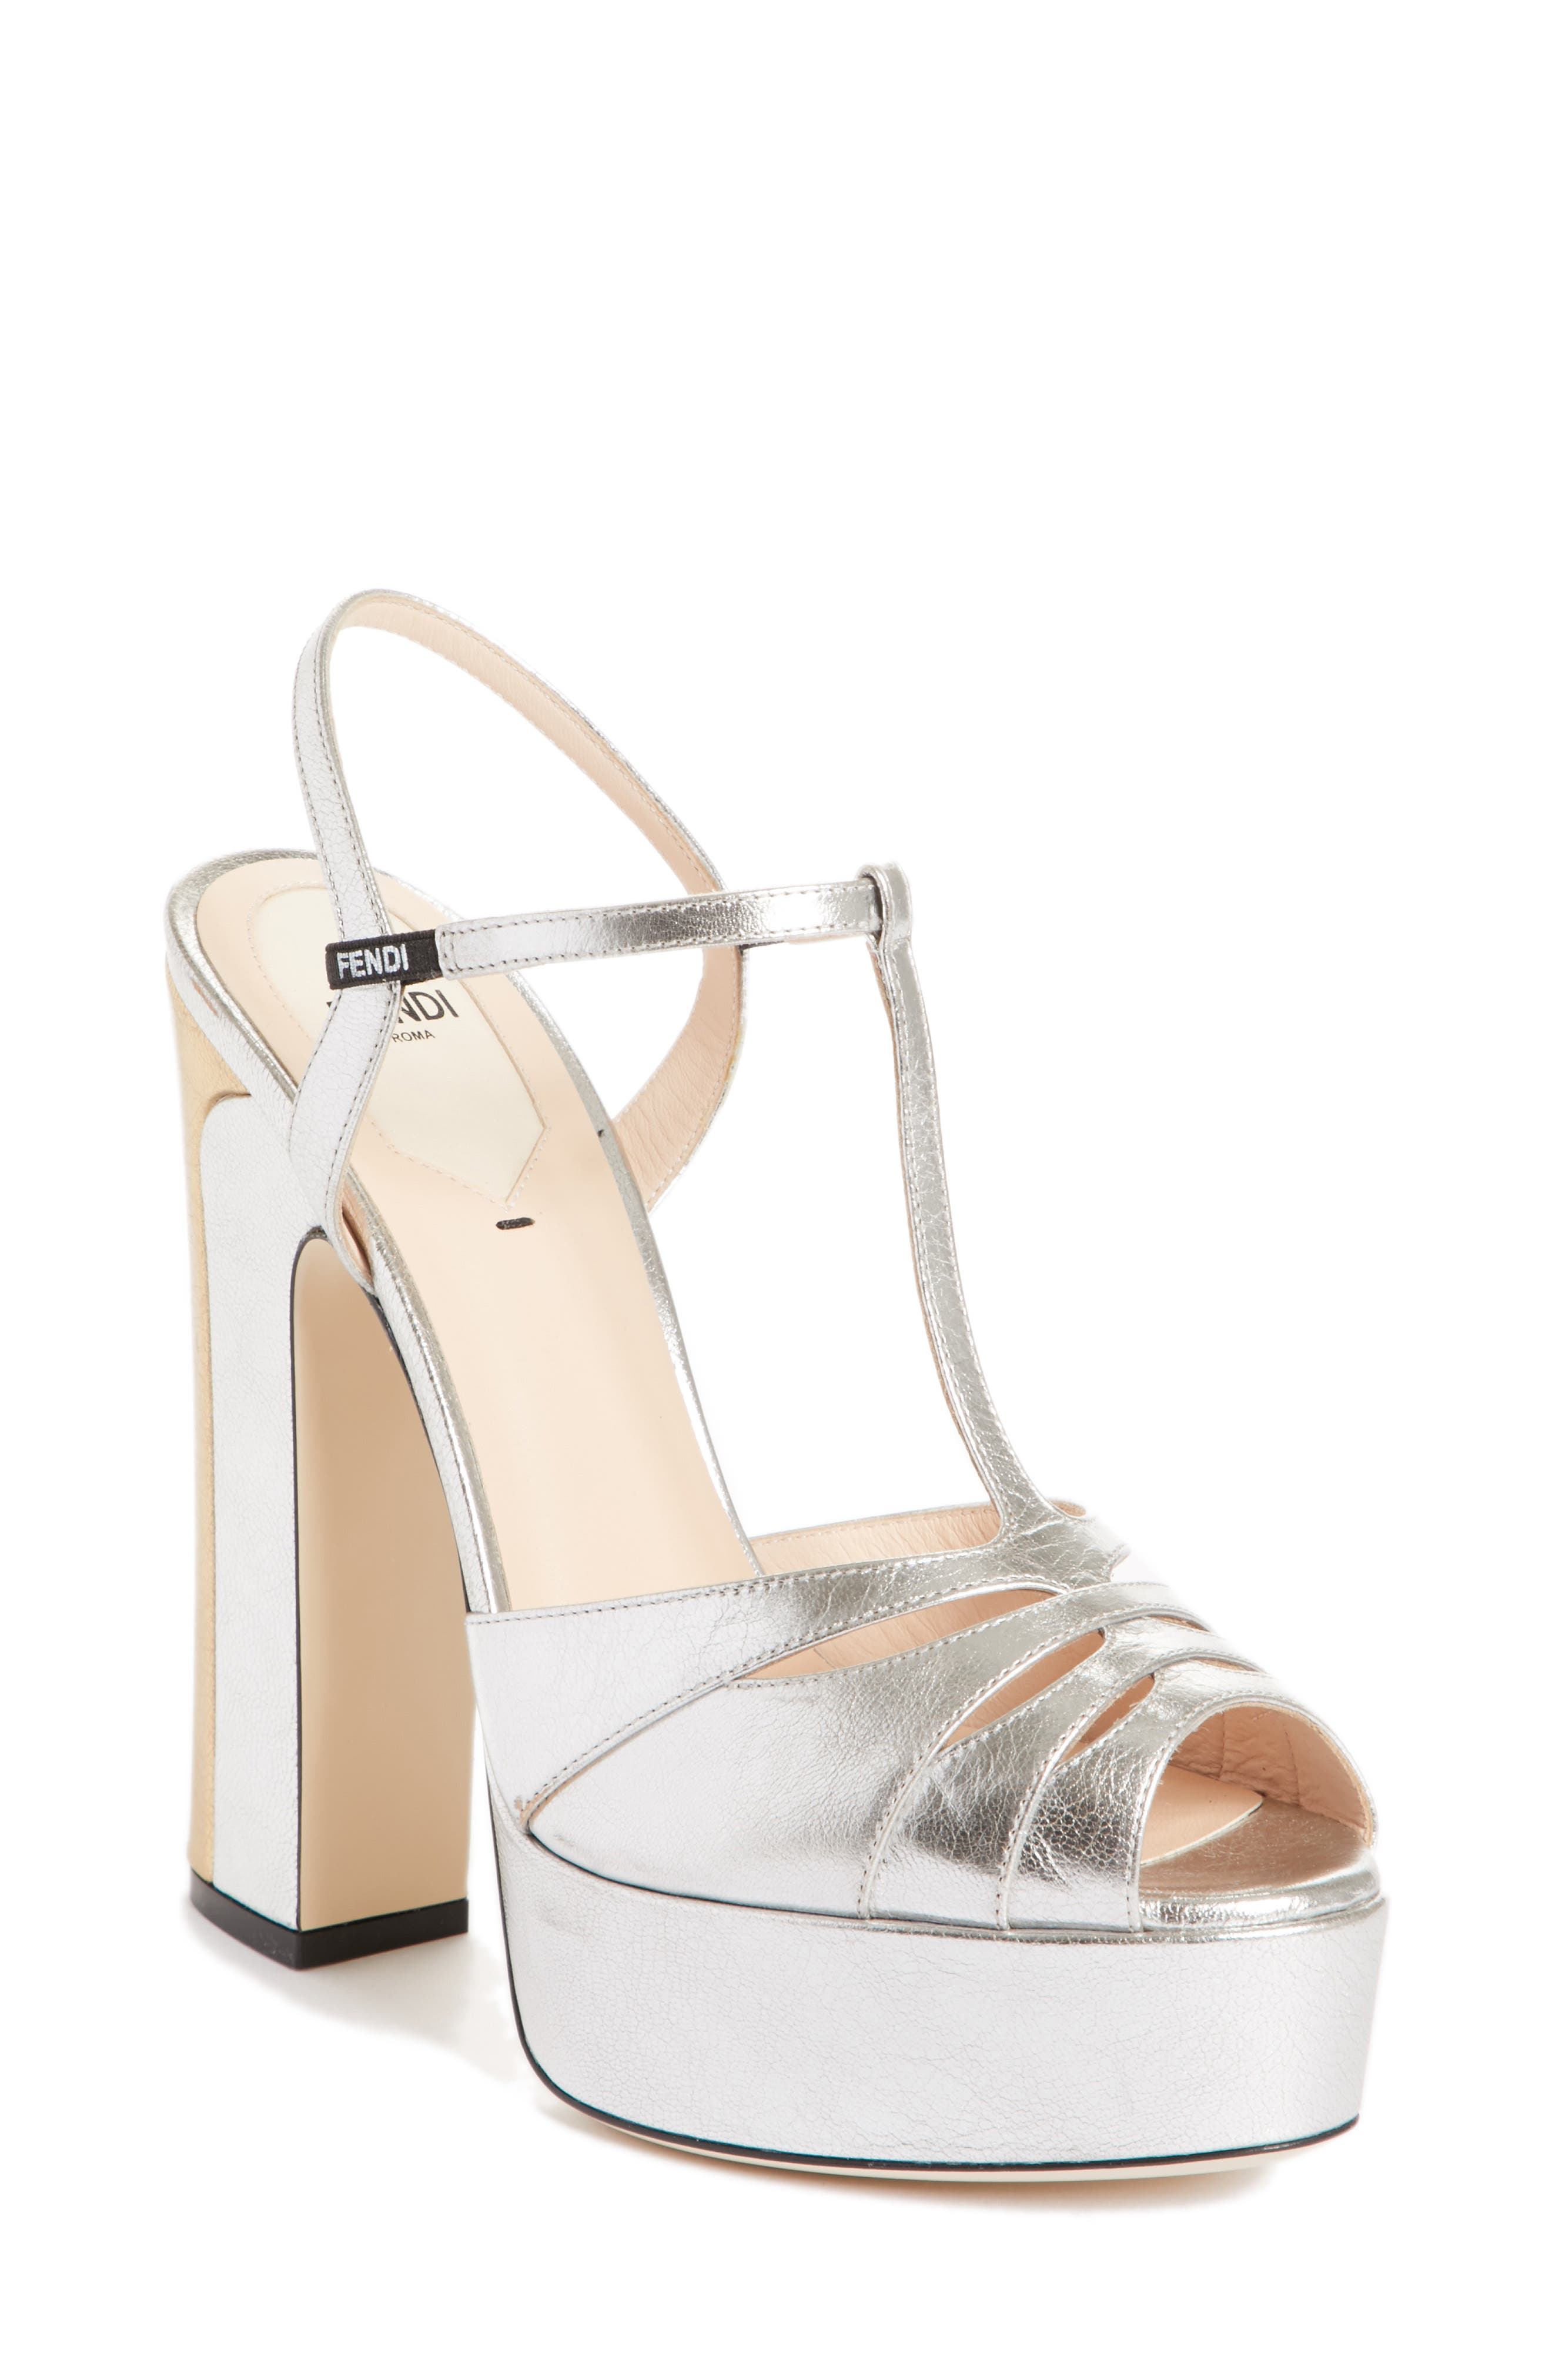 Alternate Image 1 Selected - Fendi Duo Platform Sandal (Women)